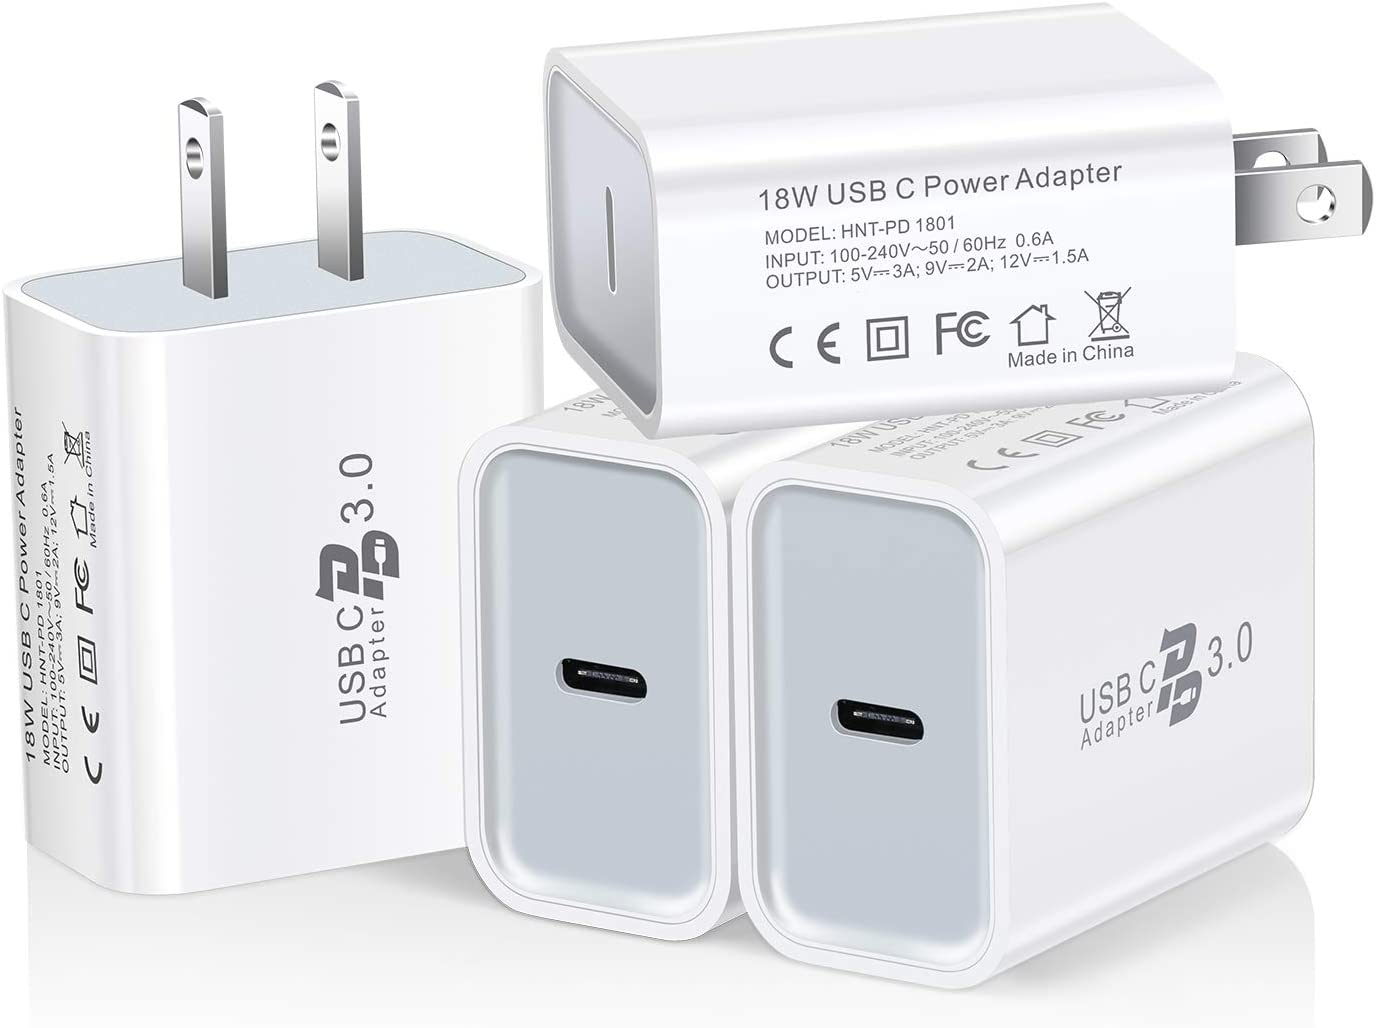 iPhone 11 Pro Max//X//Xr//Xs//8p 2-Pack S10//S9 USB C Wall Charger Excgood 18W PD 3.0 USBC Charger Fast Charging Block Compatible with Pixel 3//3XL//3A//2//4 Galaxy Note 10//9 -White iPad Pro